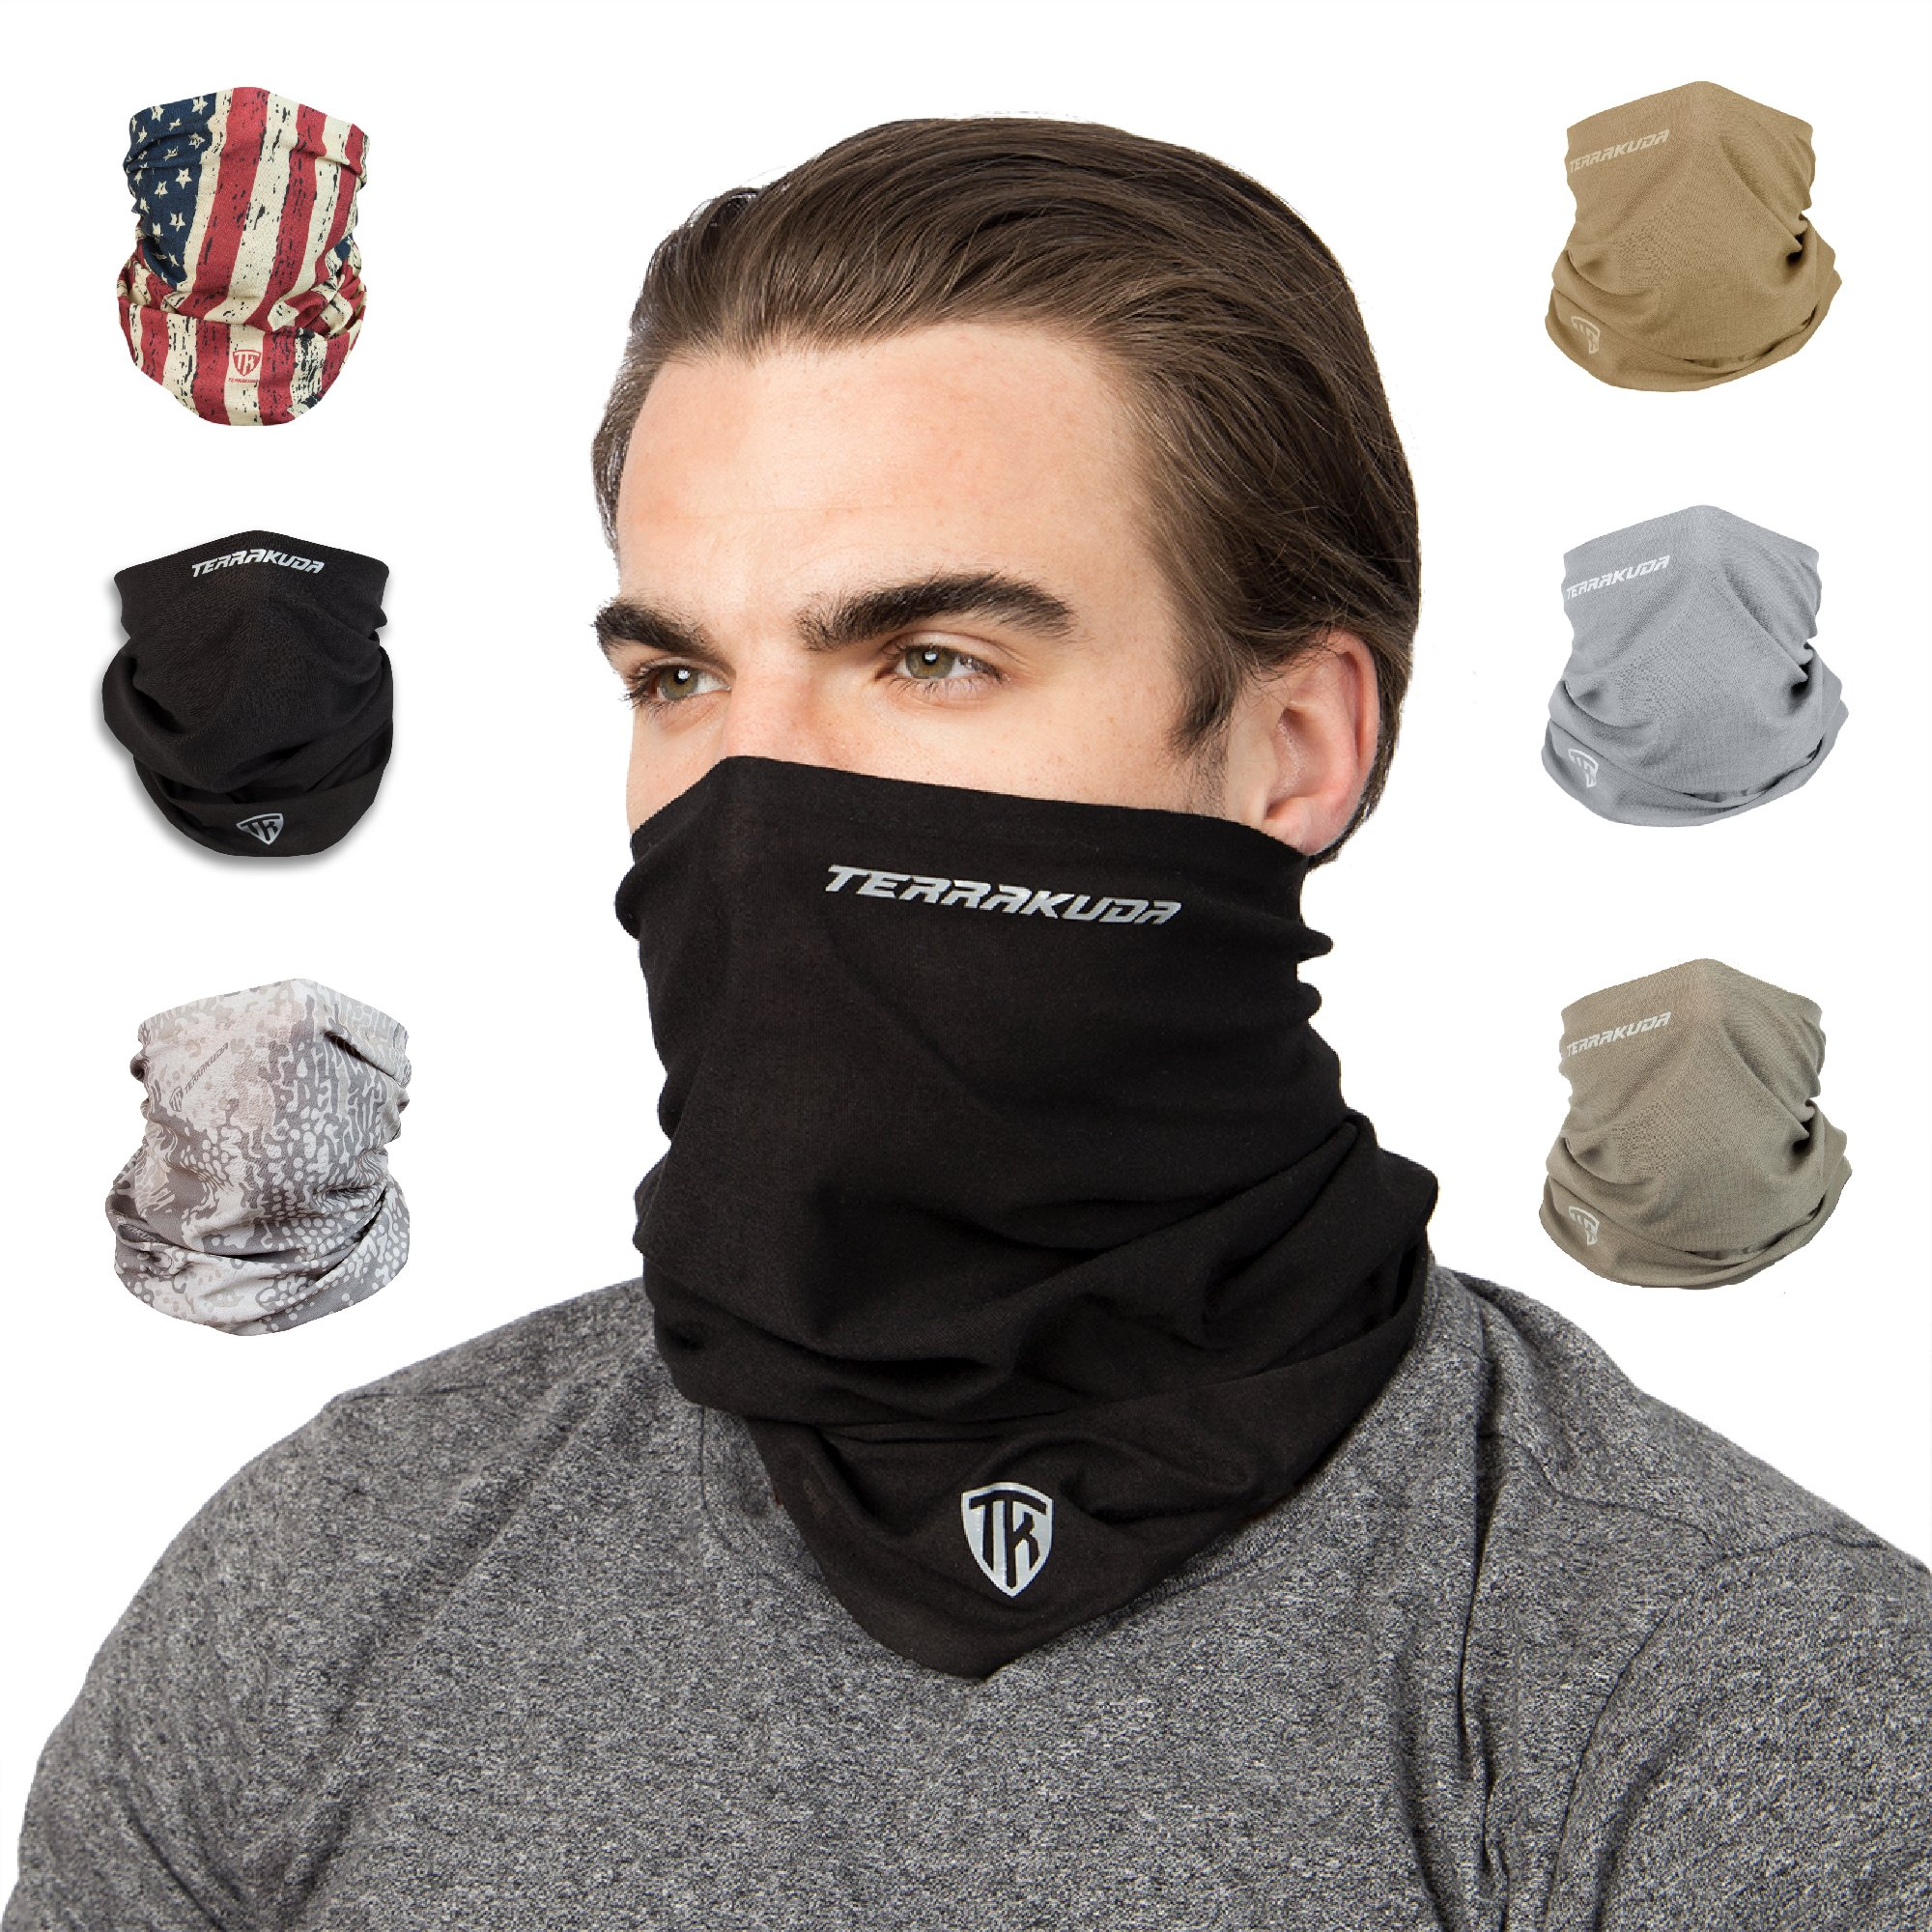 Terra Kuda Face Clothing Neck Gaiter Mask - Non Slip Light Breathable for Sun Wind Dust Bandana Balaclava (Stealth Black) by Terra Kuda